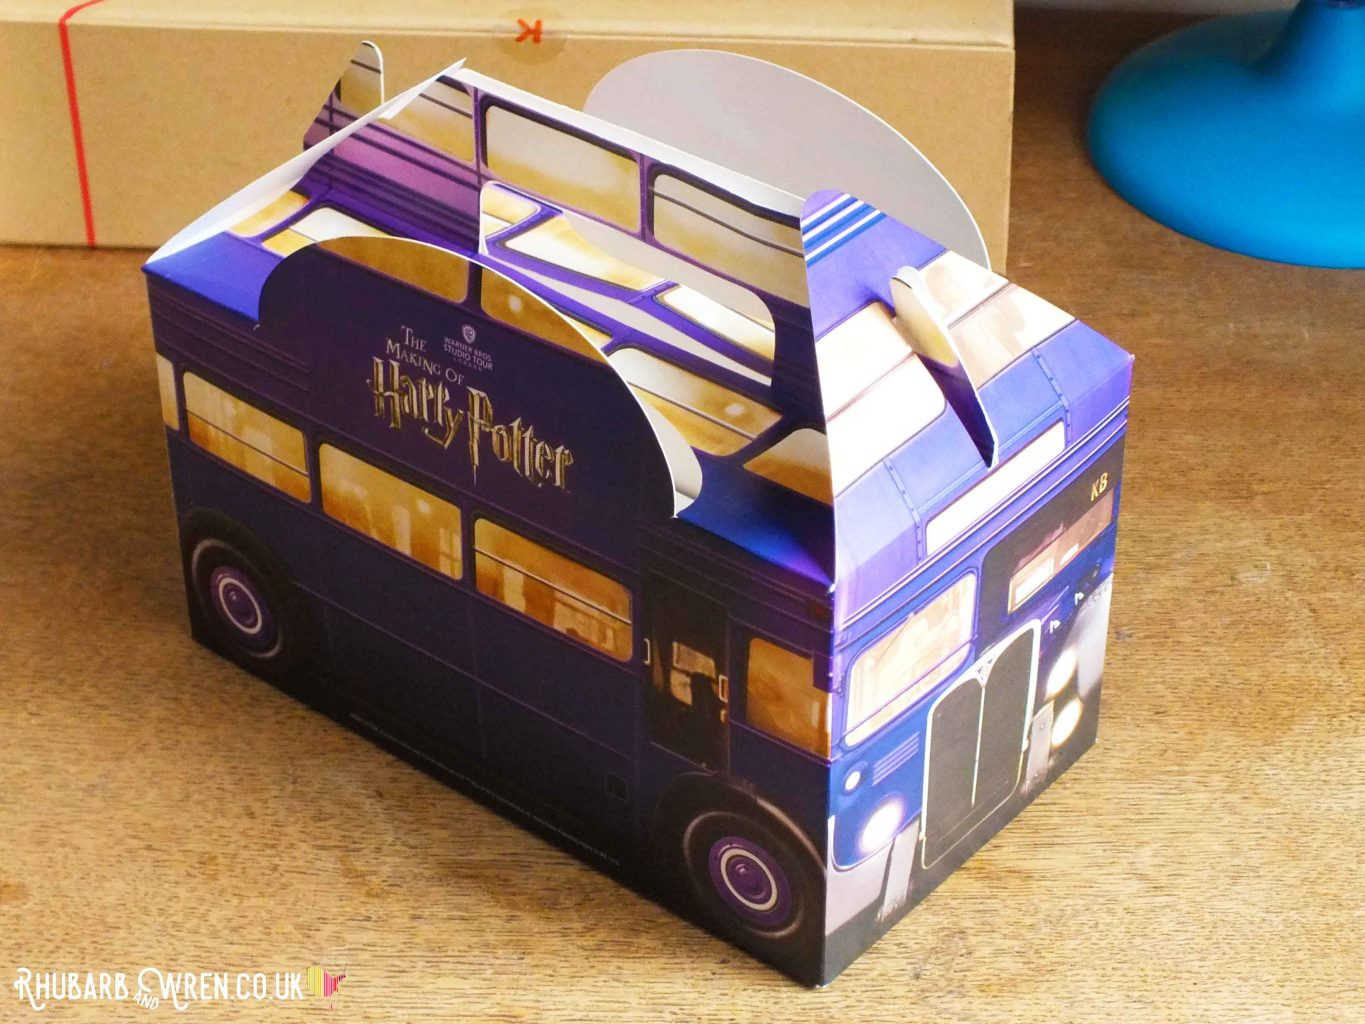 Knight bus kids lunch box at the Harry Potter studio tour